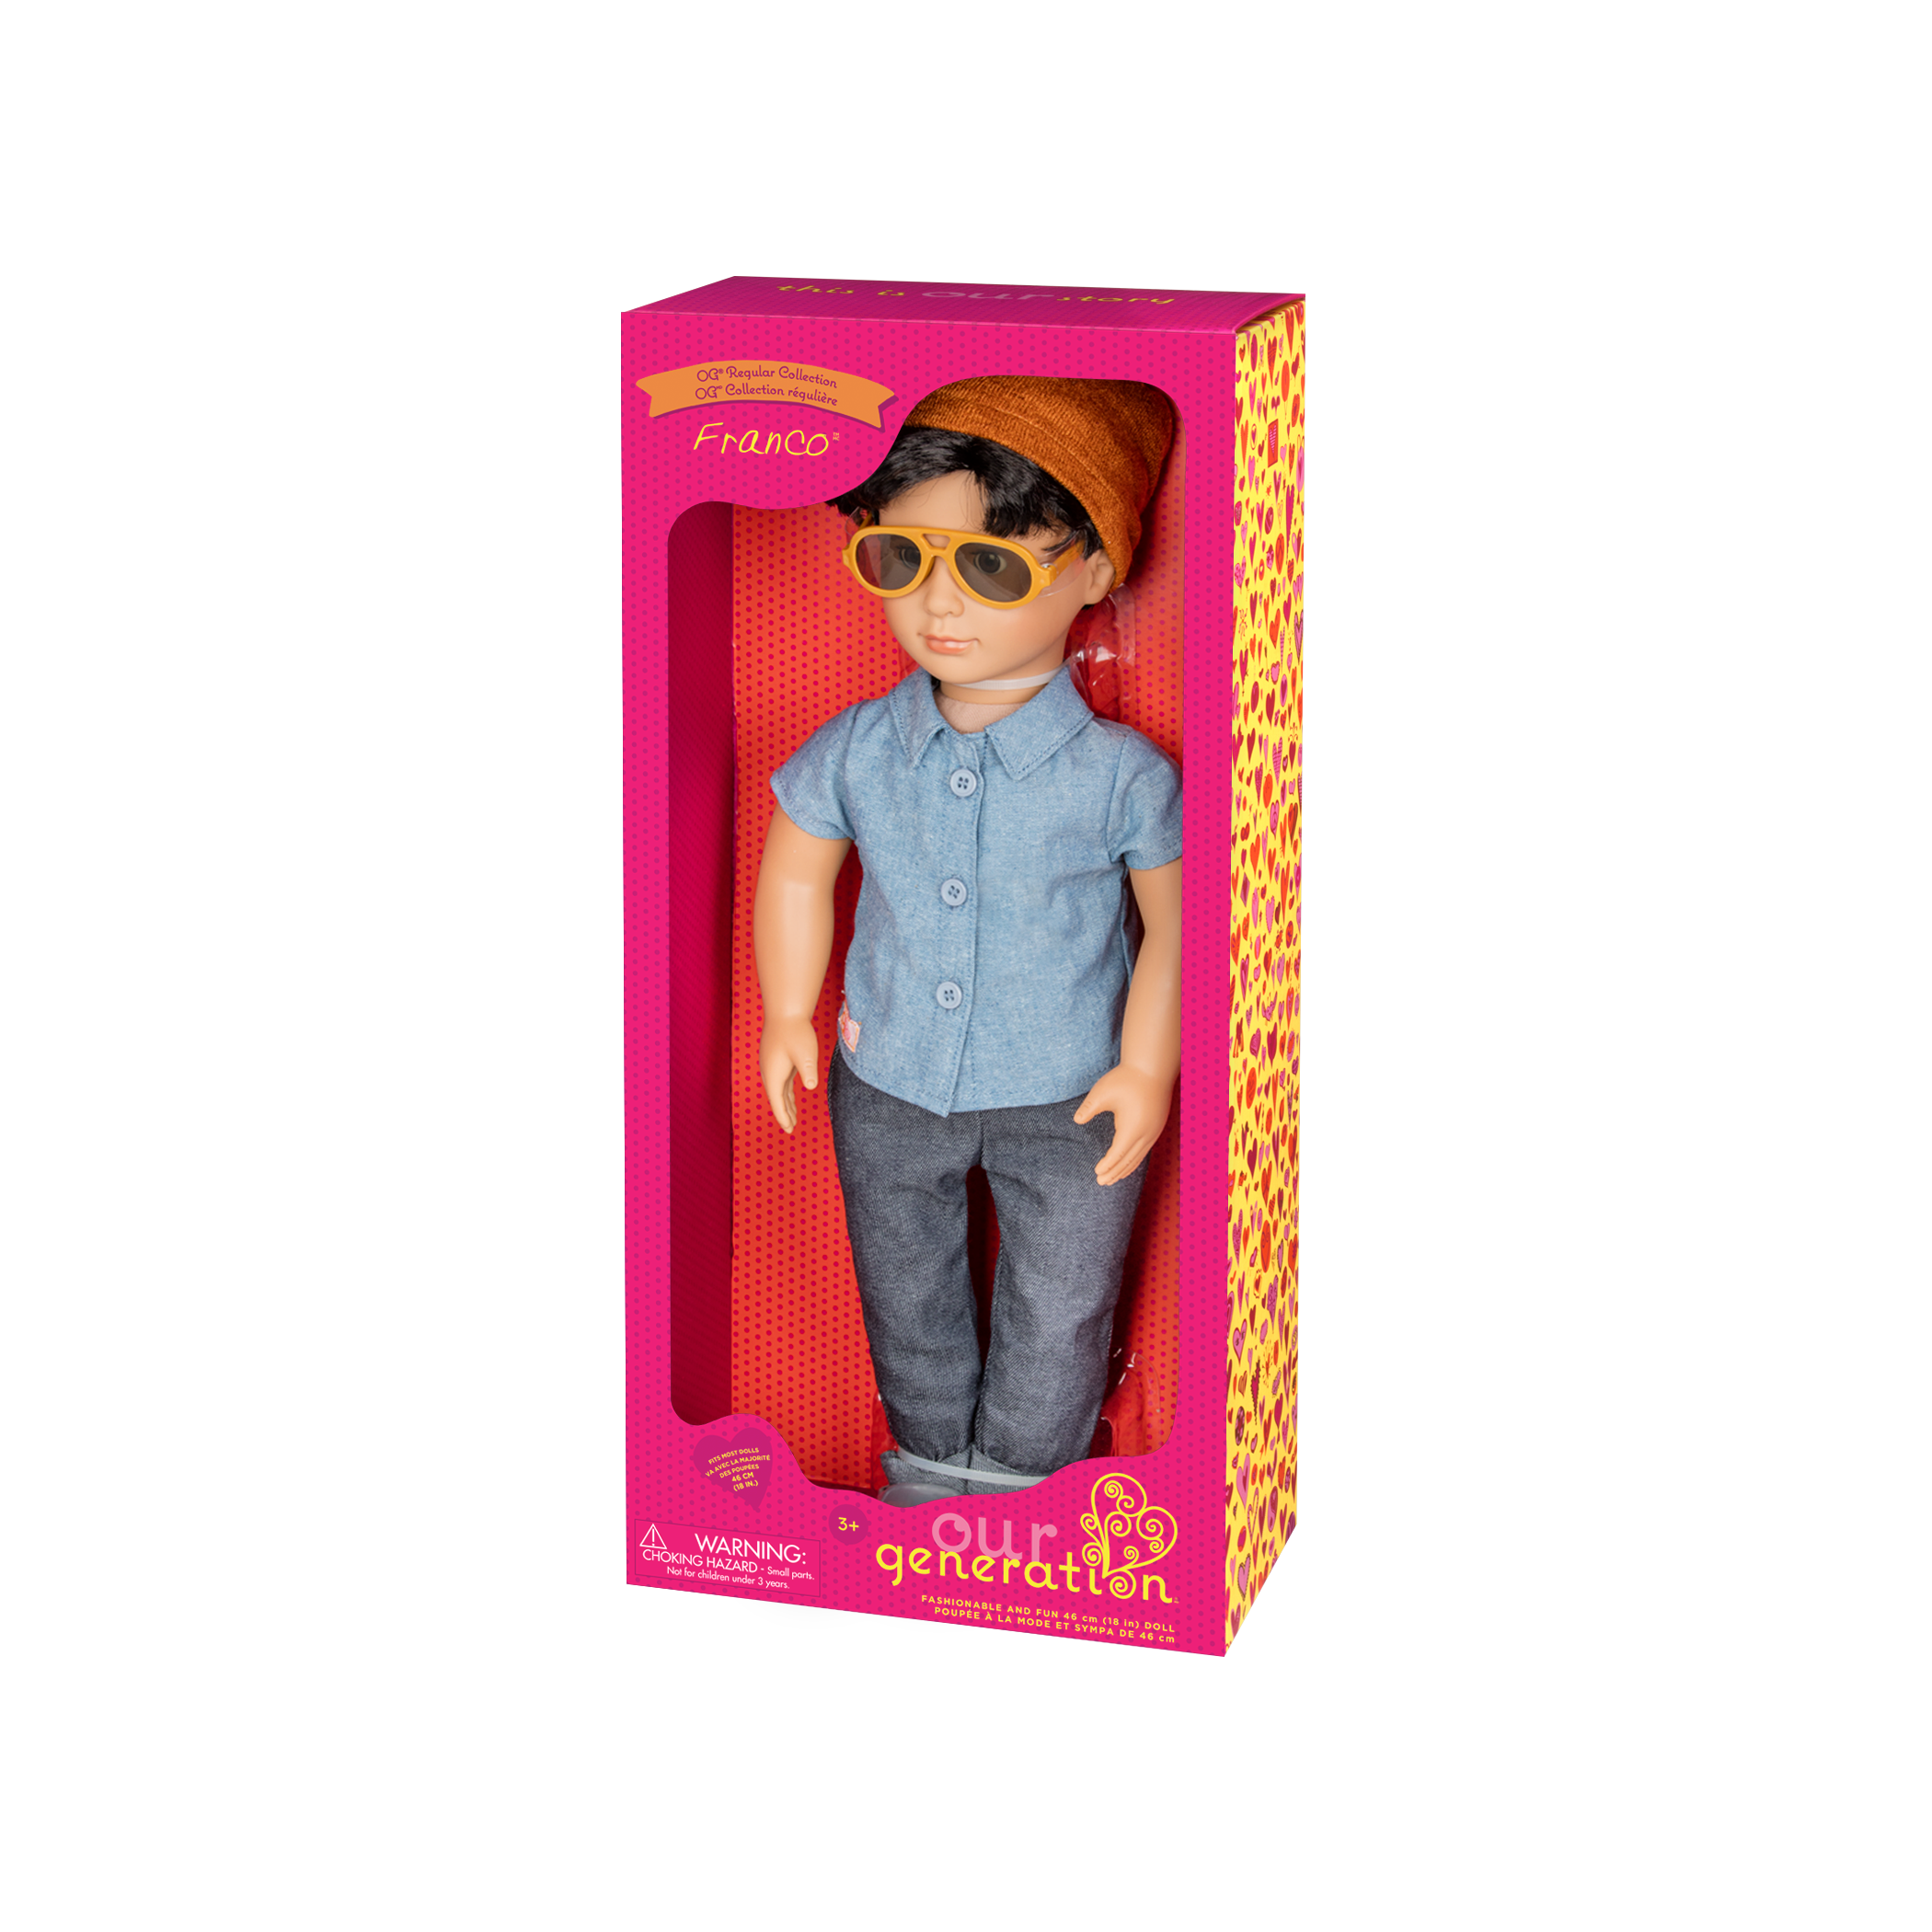 Franco Regular 18-inch Boy Doll in packaging